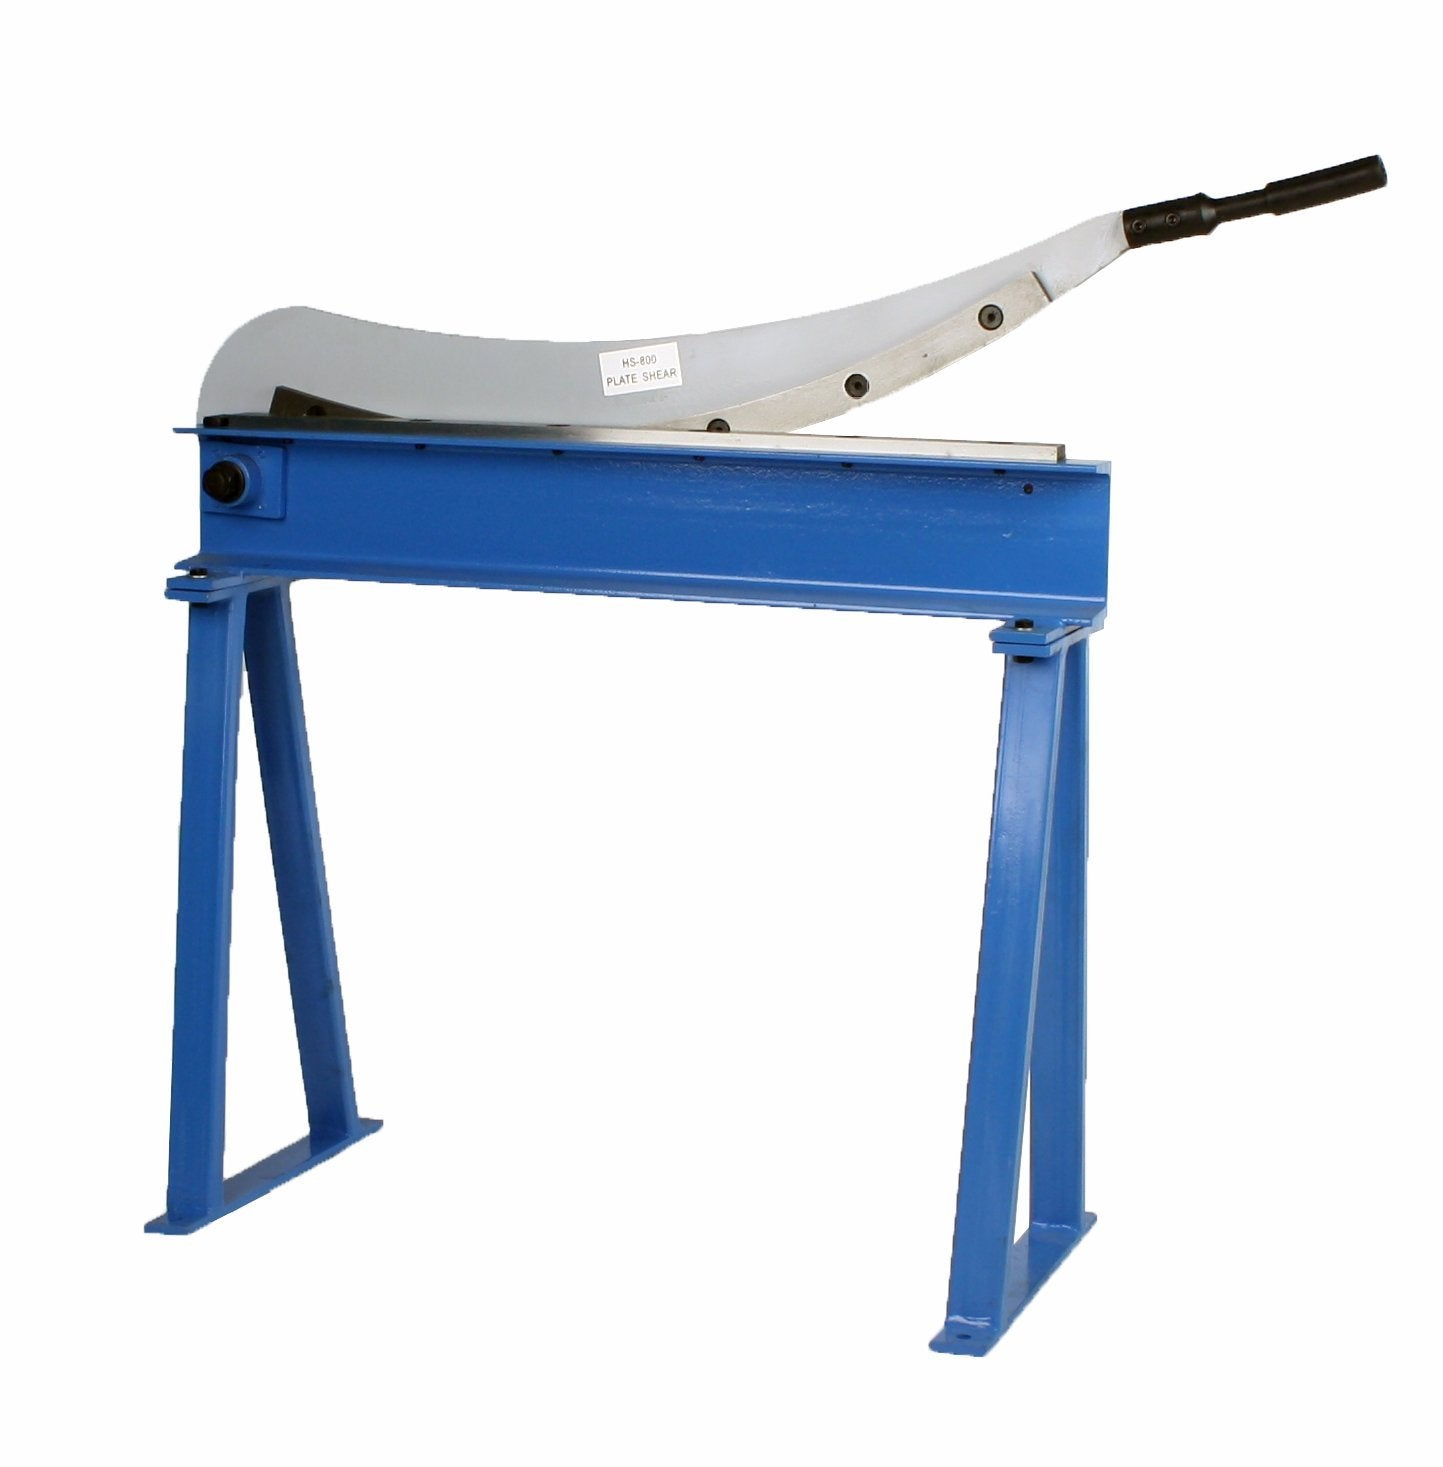 "Manual Guillotine Shear 32"" x 16 Gauge Sheet Metal Plate Cutter With Stand"